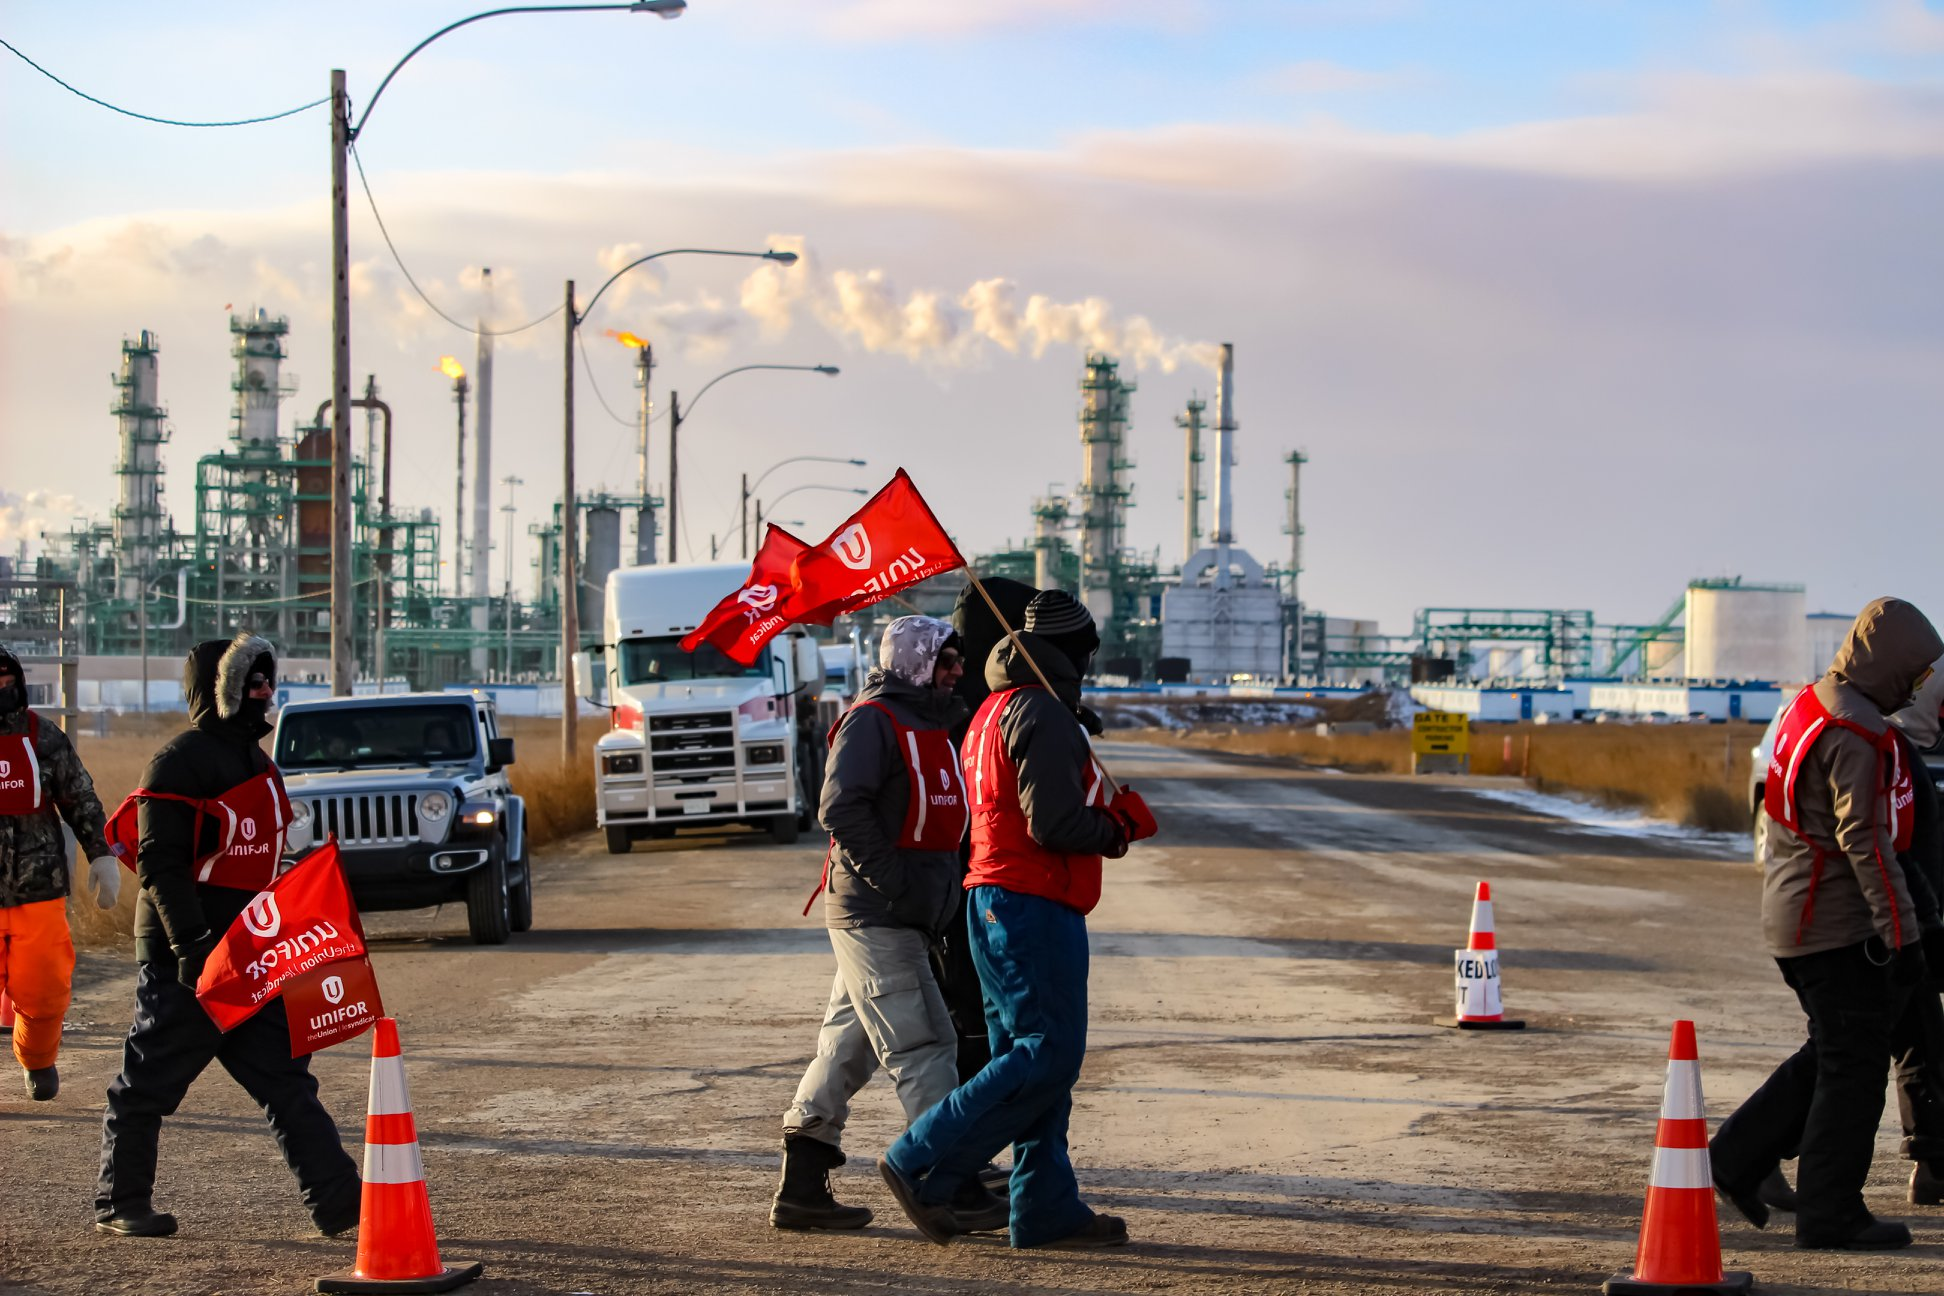 Workers at a cooperative refinery walk the picket line